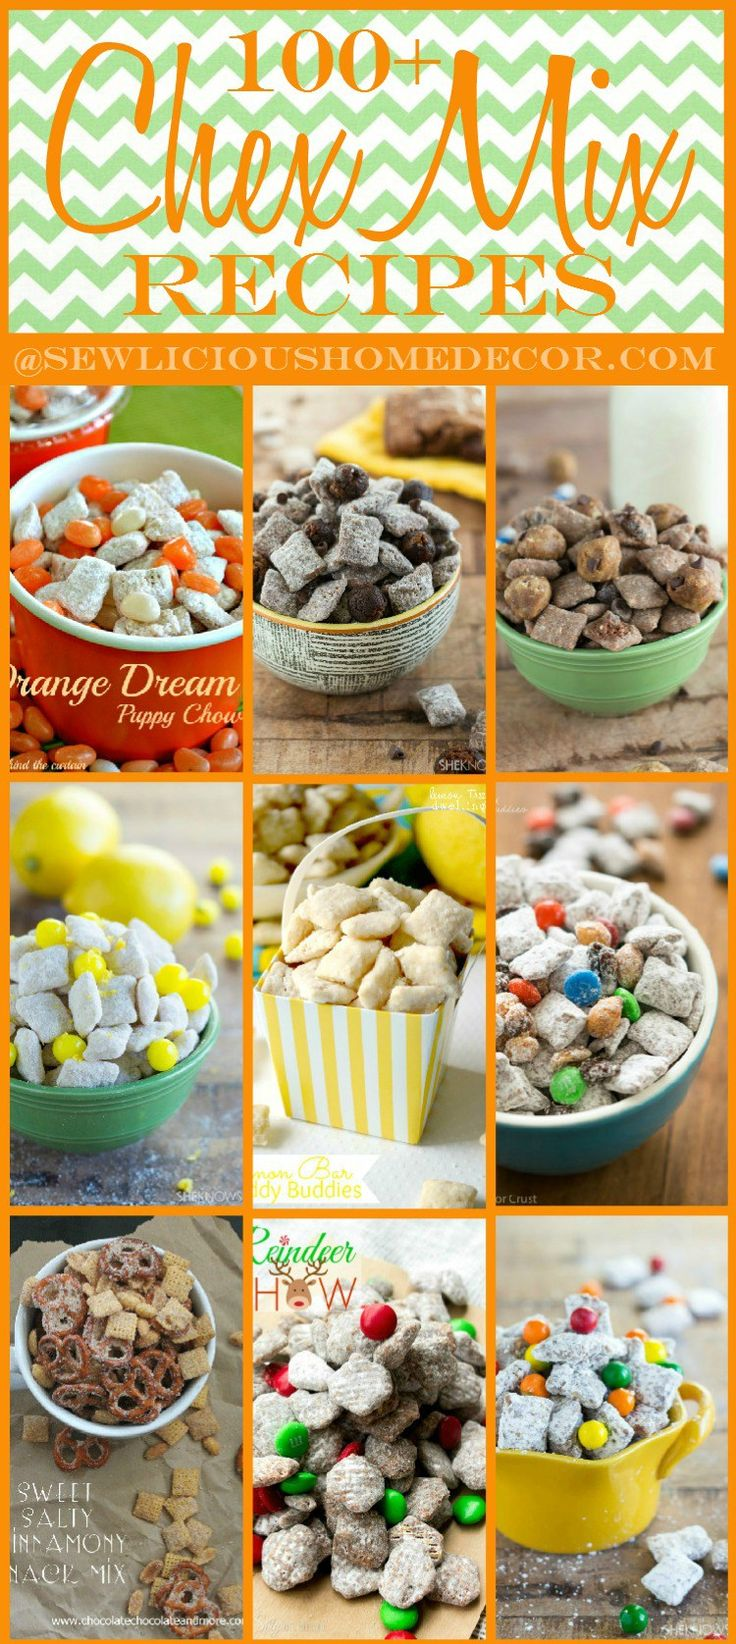 100 Party Chex Mix Puppy Chow Recipes and Appetizers @ Sew Licious Home Decor|                                                                                                                                                      More